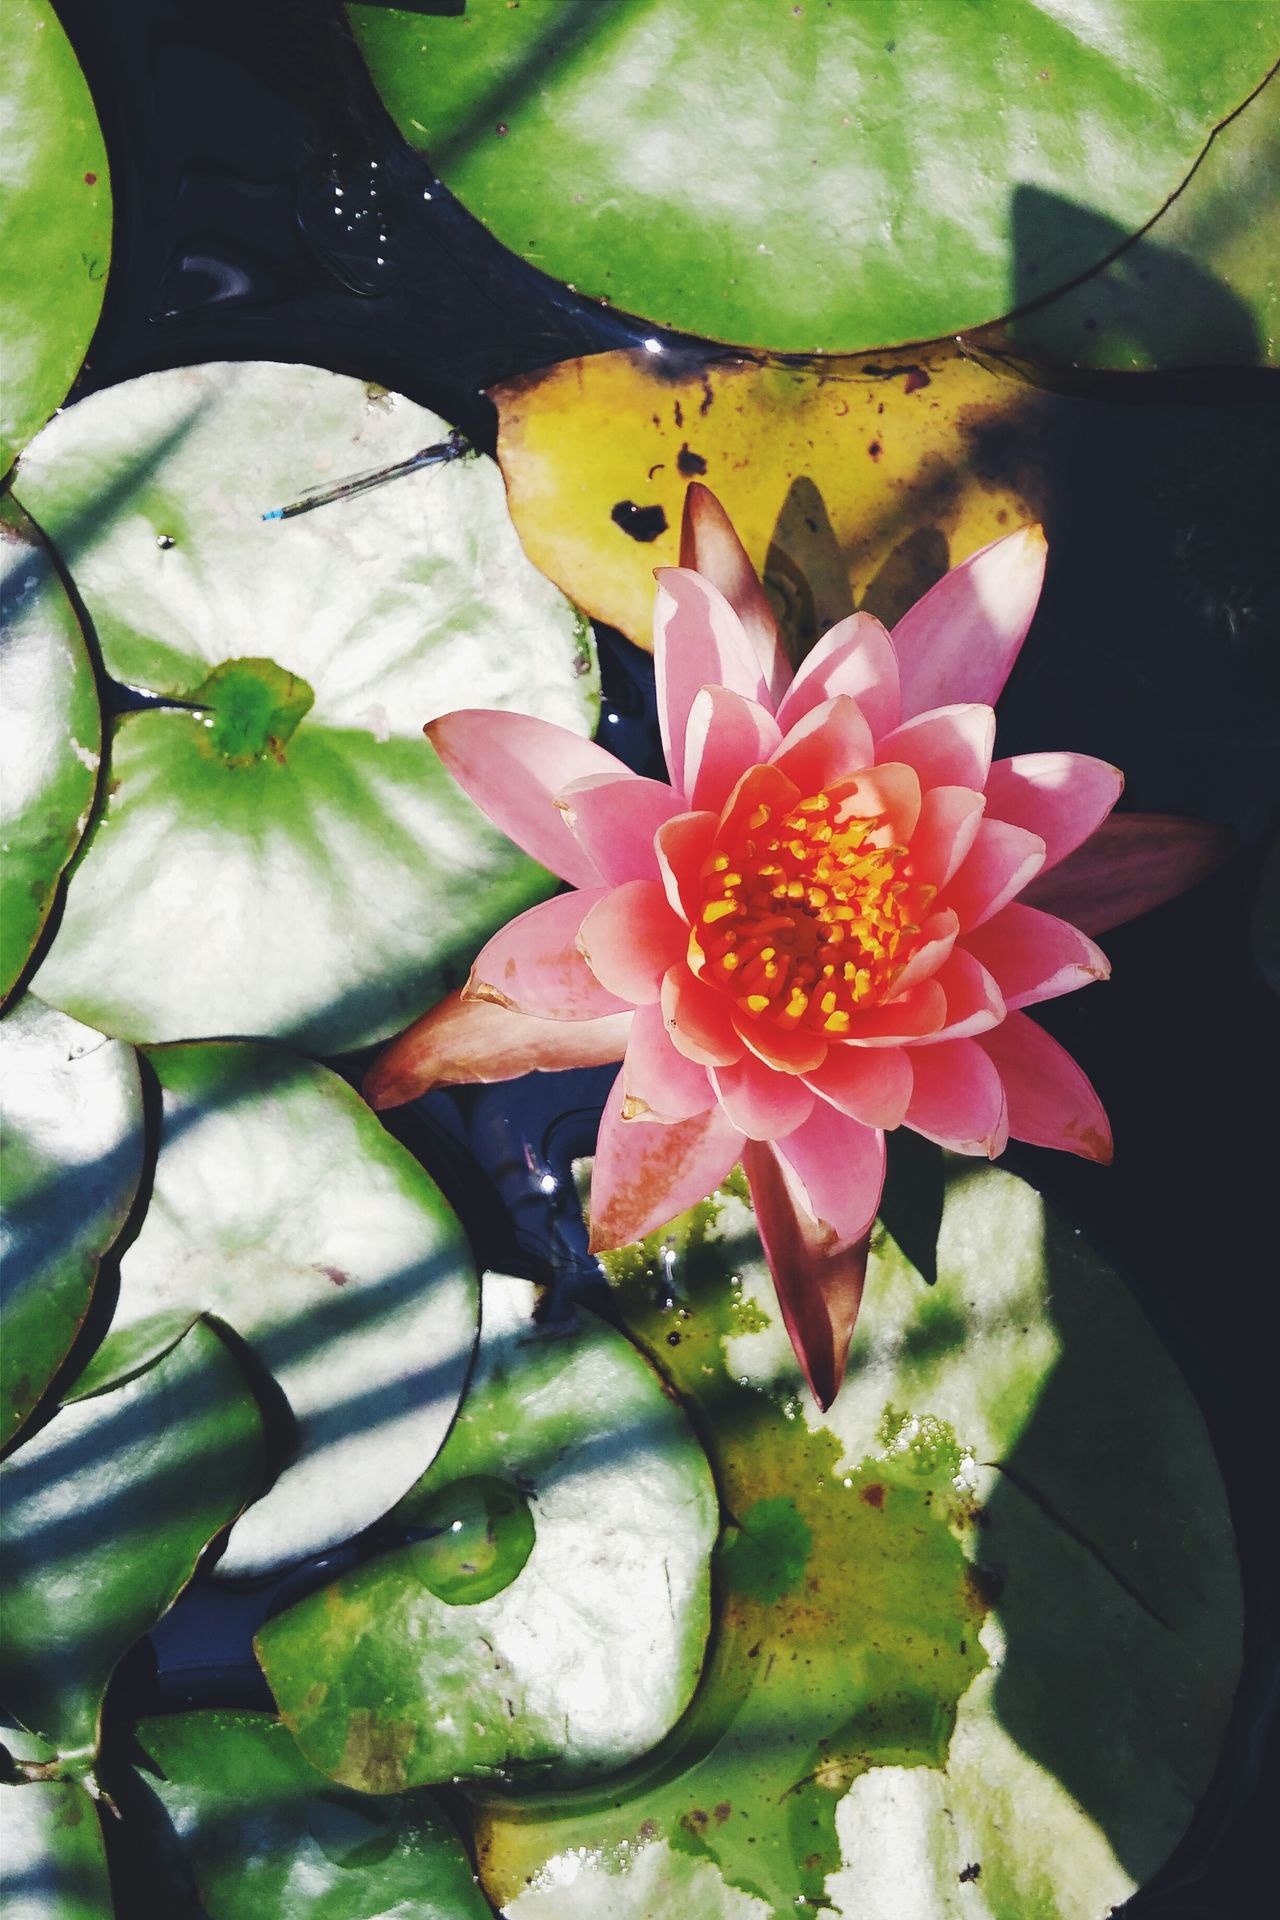 Water Lily Lotus Flower a small water lily flower Nymphaeaceae